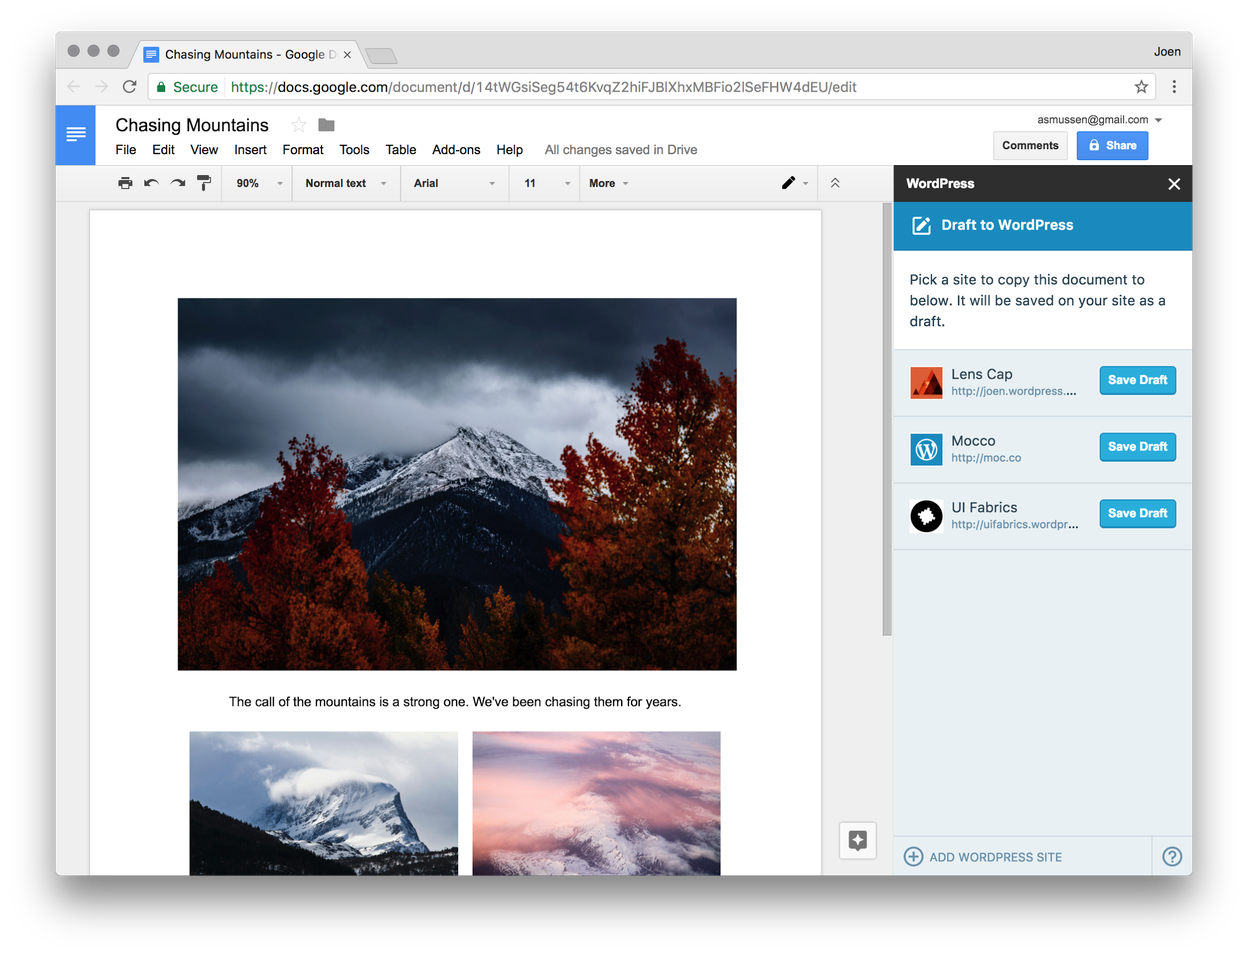 WordPress for Google Docs Lets Multiple Users Collaborate on Content in Real-Time